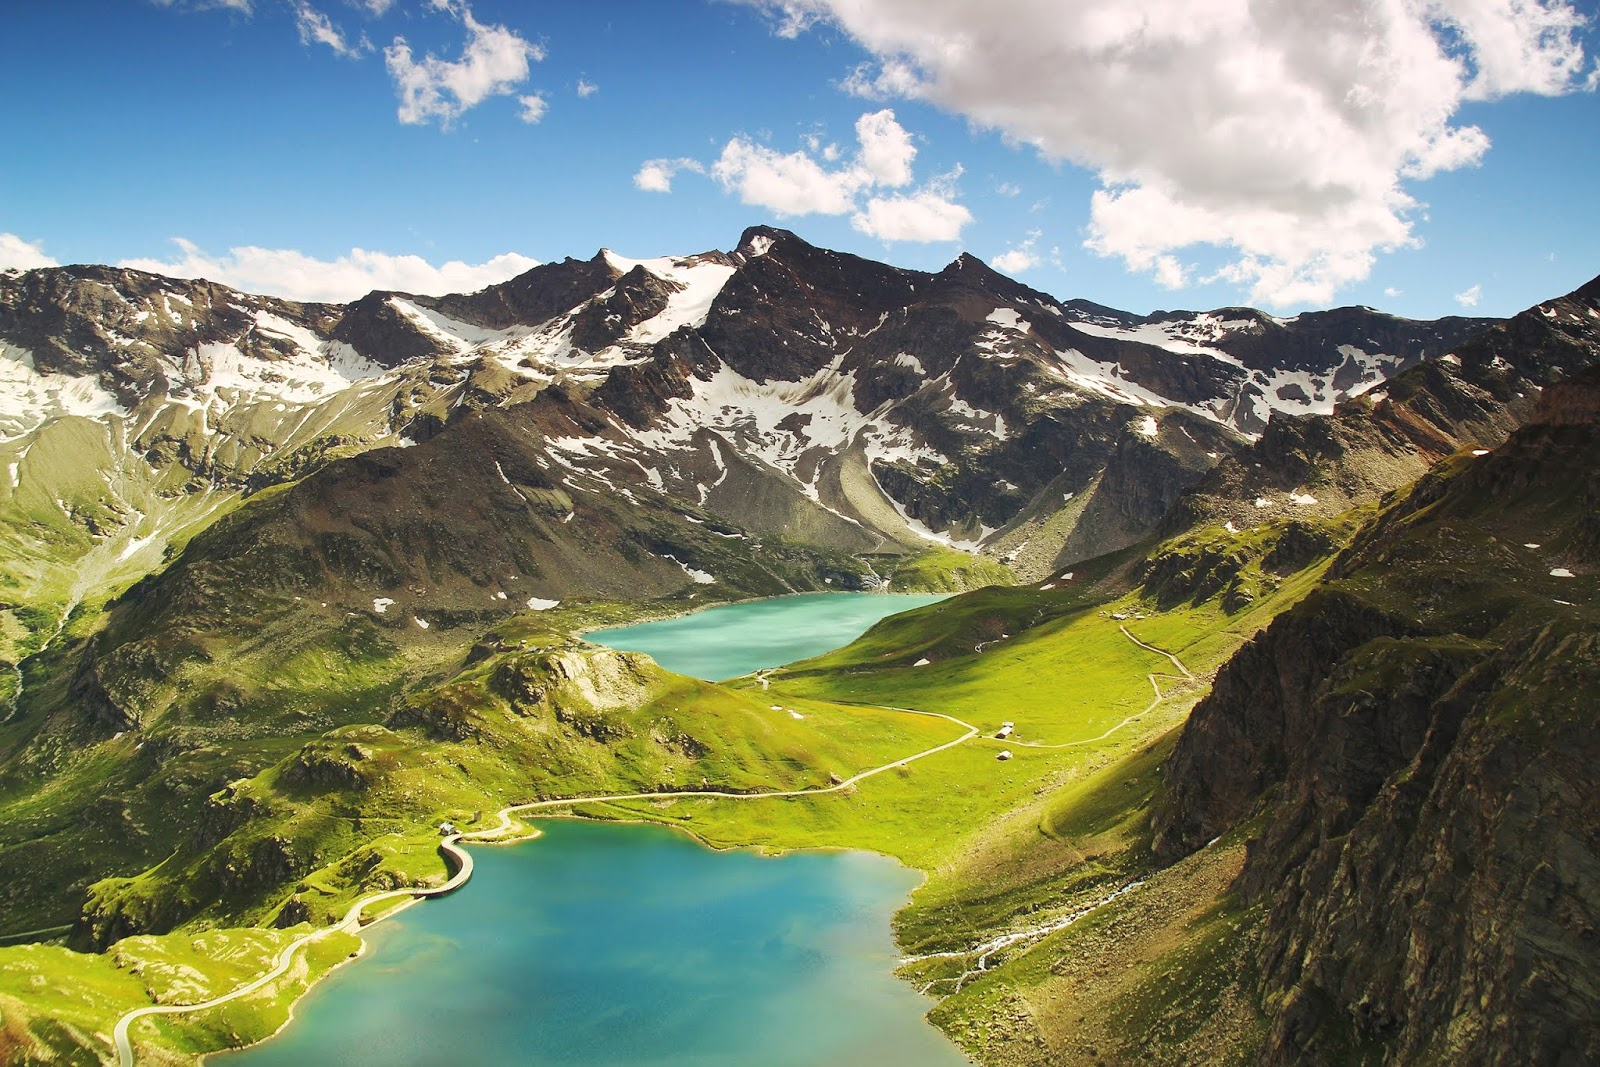 Agnel Lake, Ceresole Reale, Mountains, Italy, World